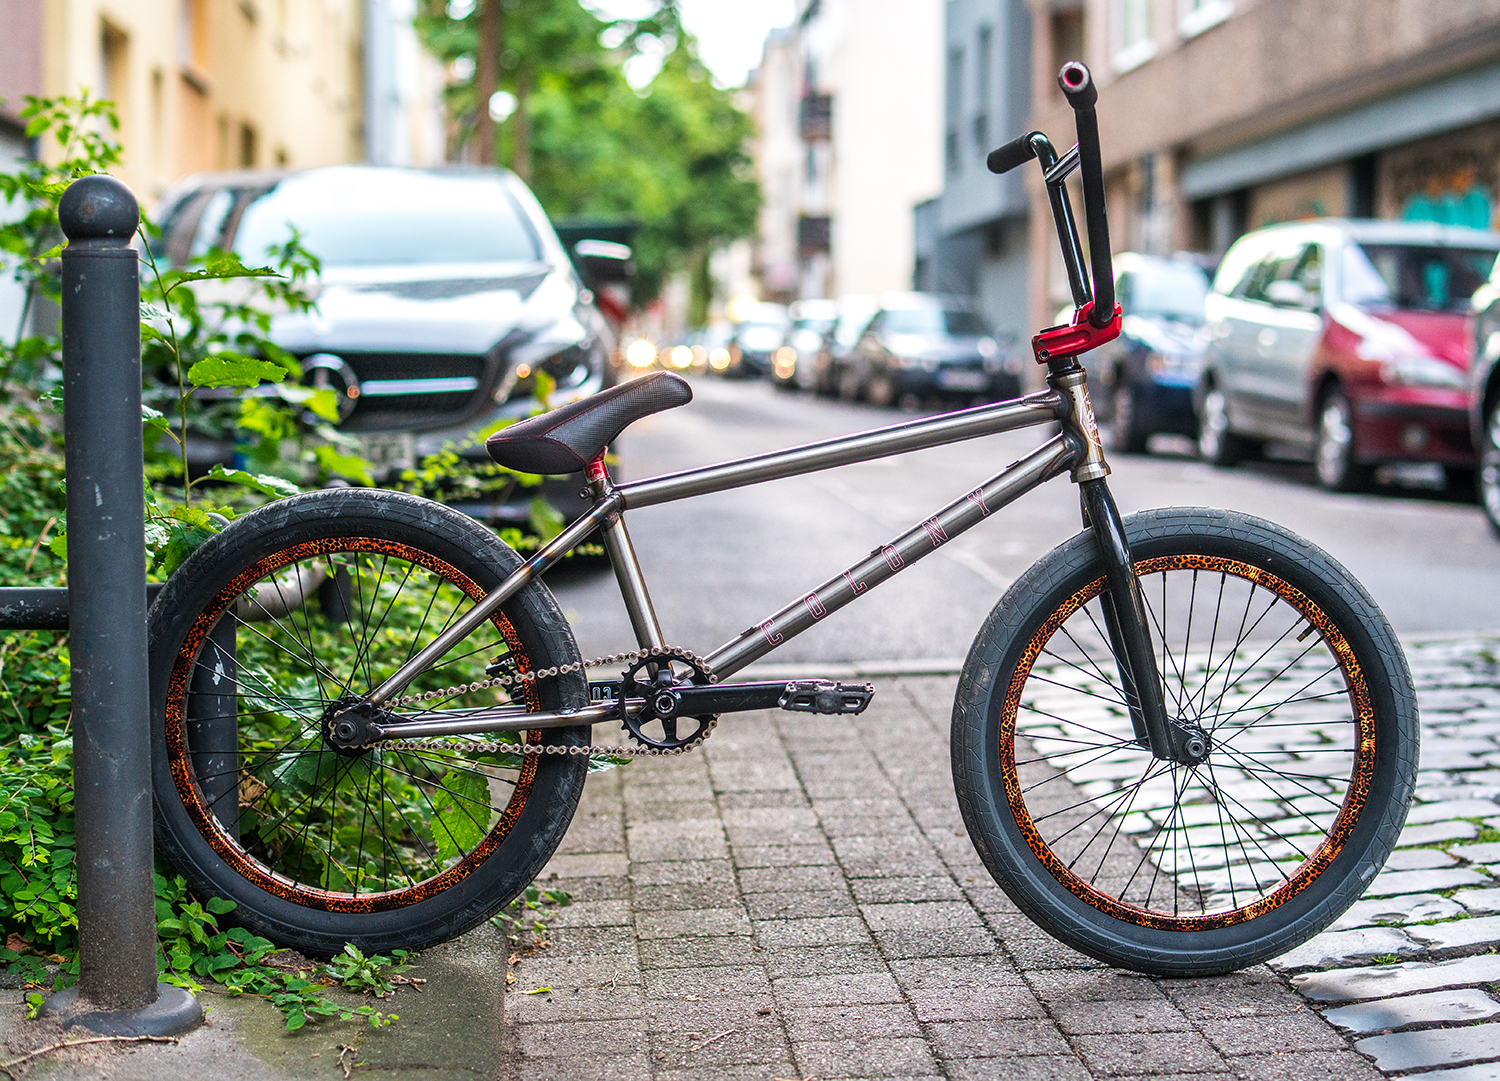 Chris James bike check